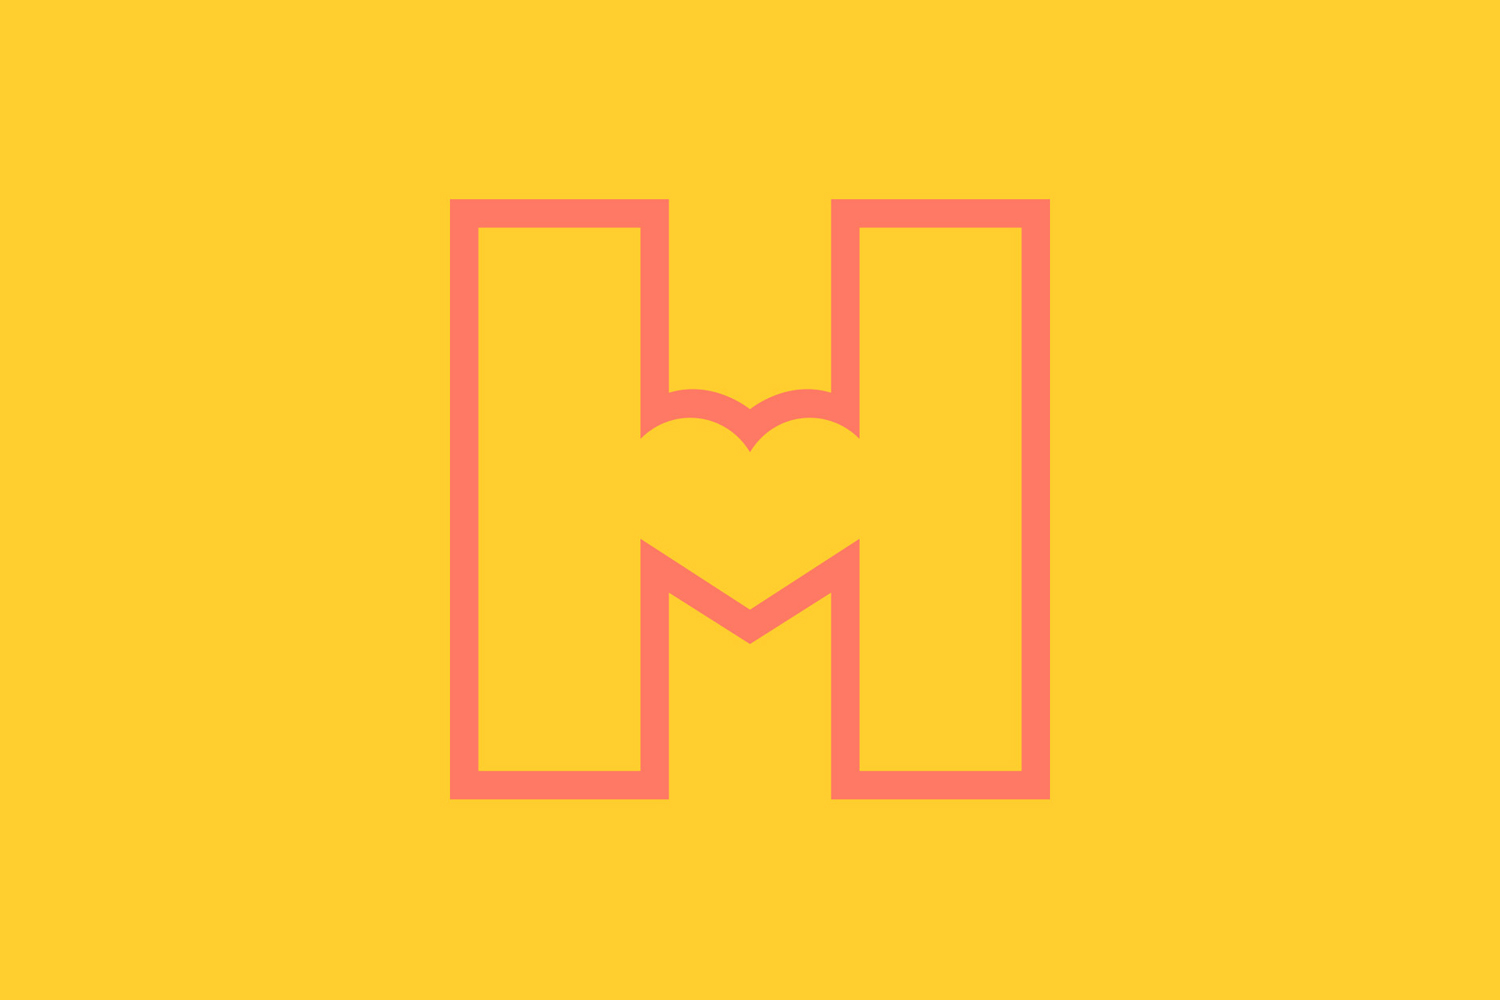 Logo by Finnish graphic design studio Werklig for Helsinki City Museum